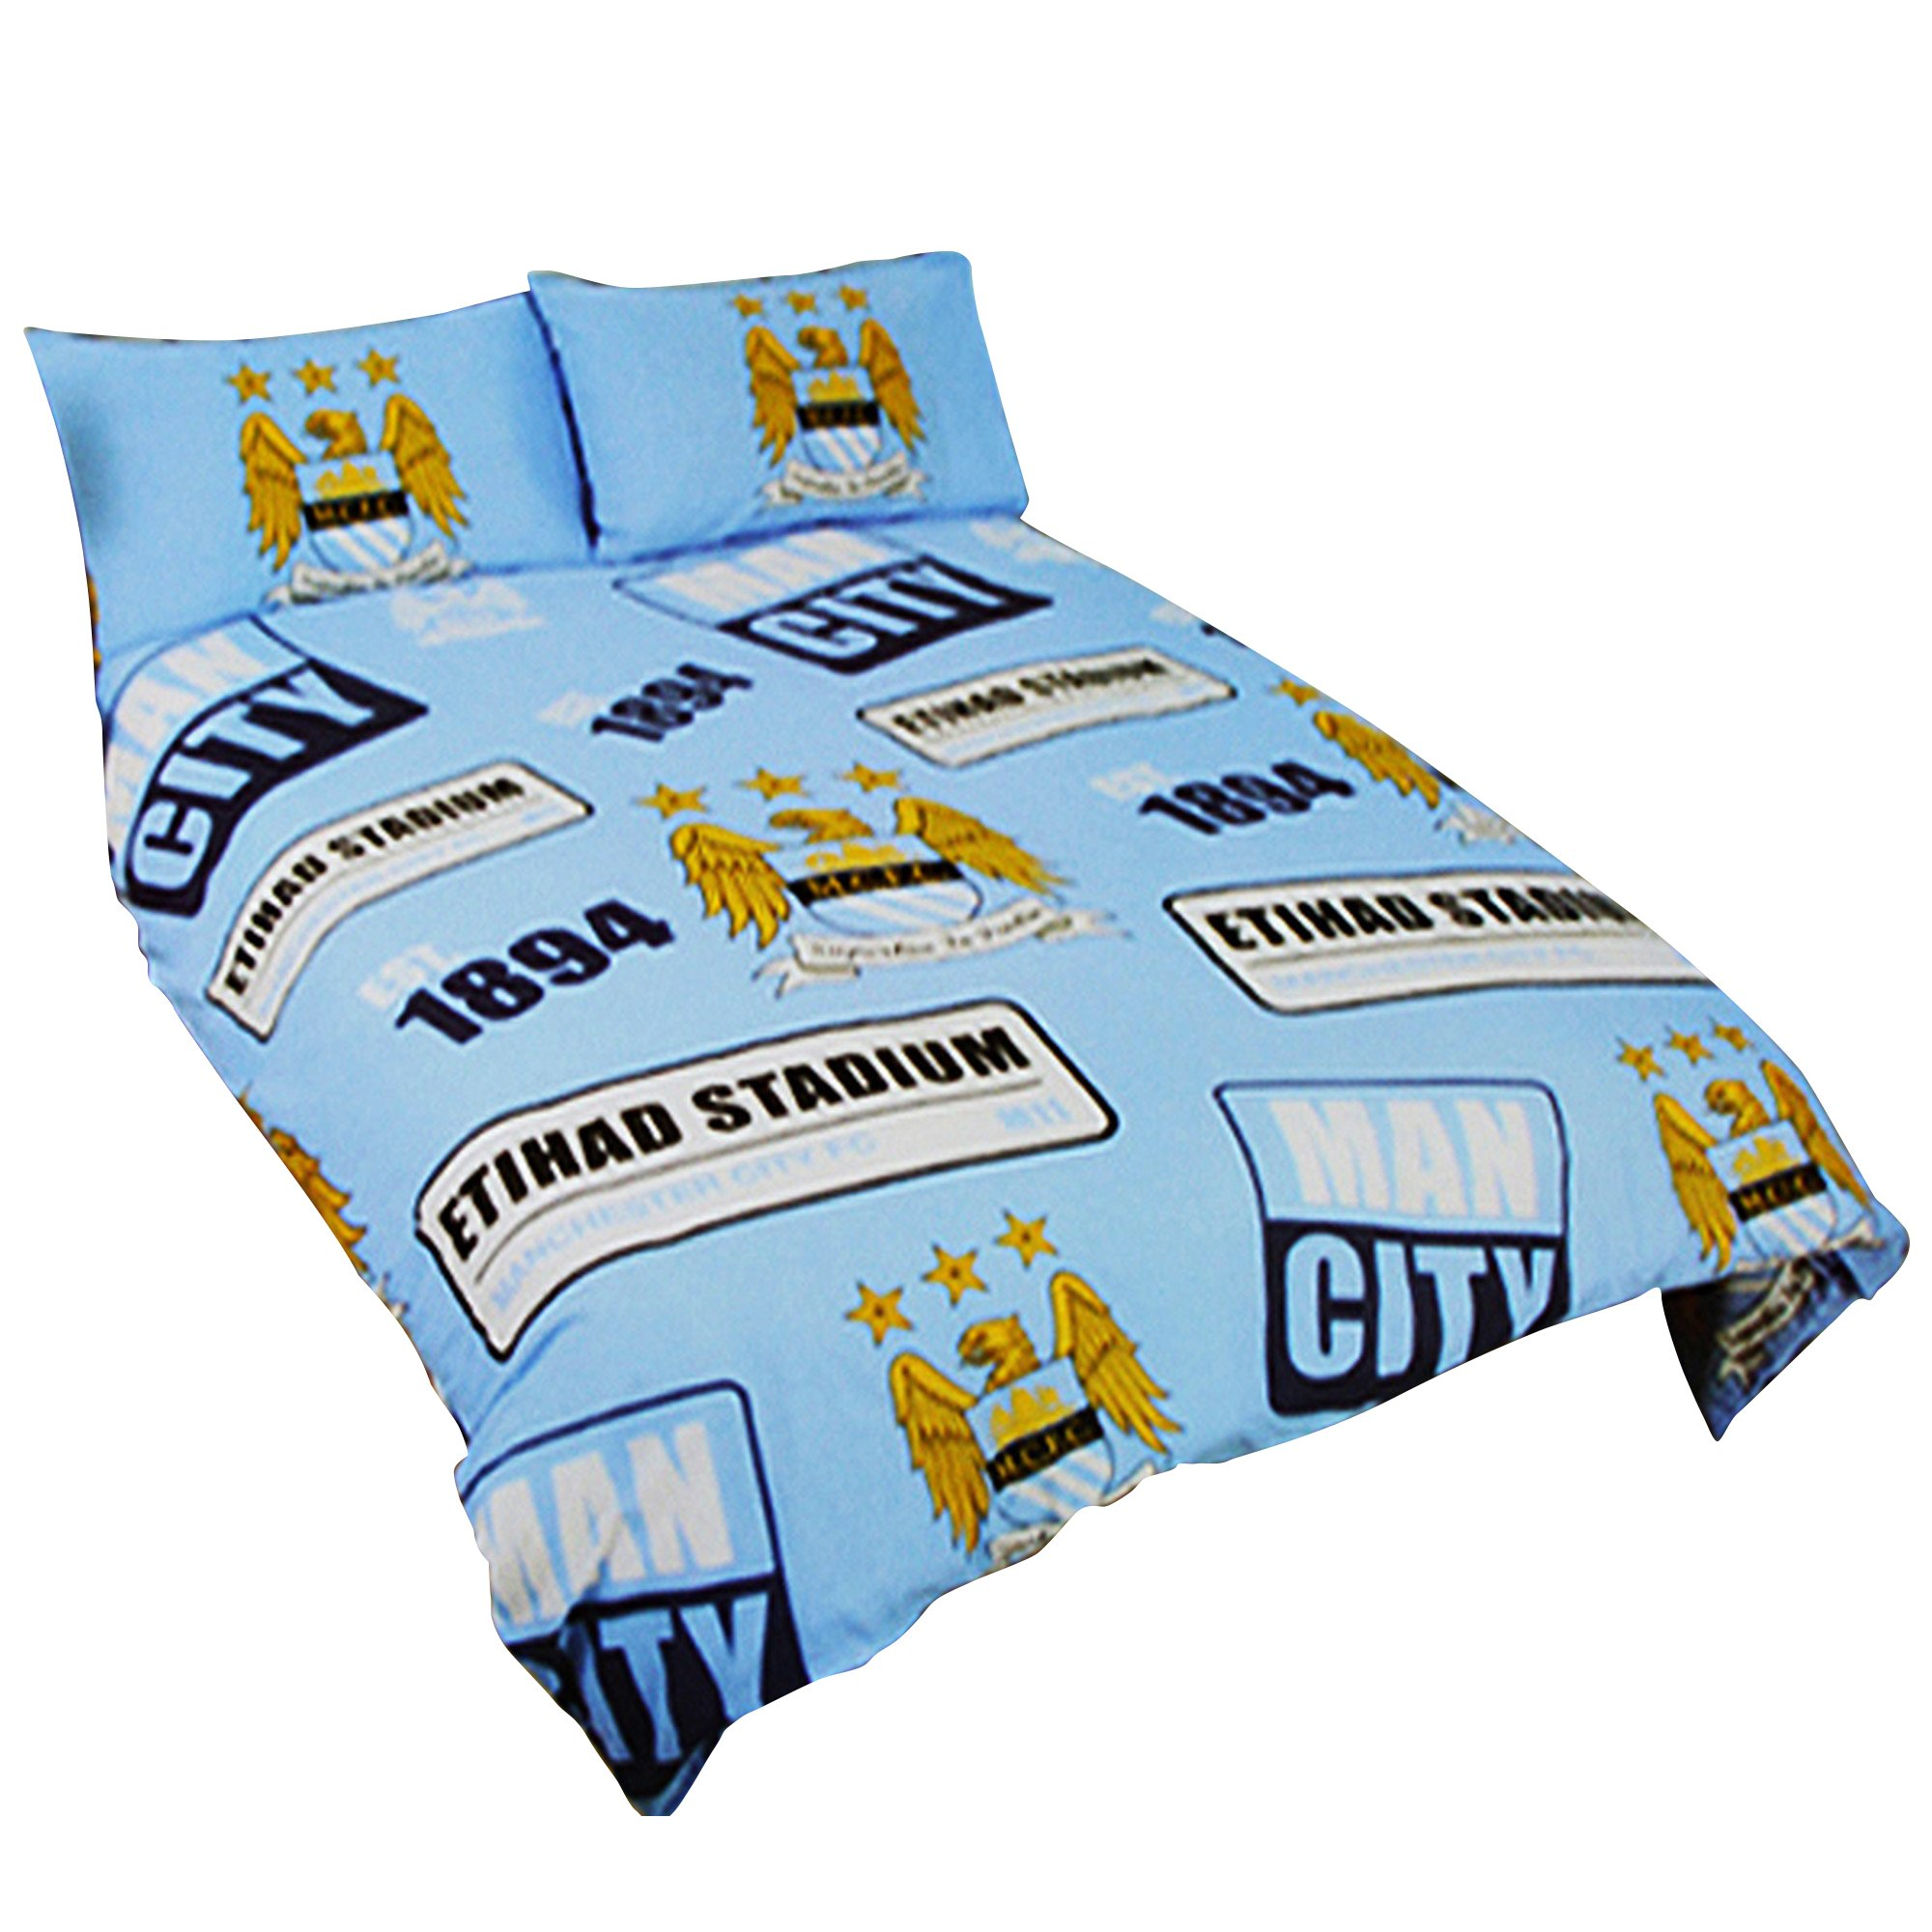 Manchester City FC Official Patch Football/Soccer Crest Duvet Cover Bedding Set (Full) (Sky Blue) by Manchester City F.C.